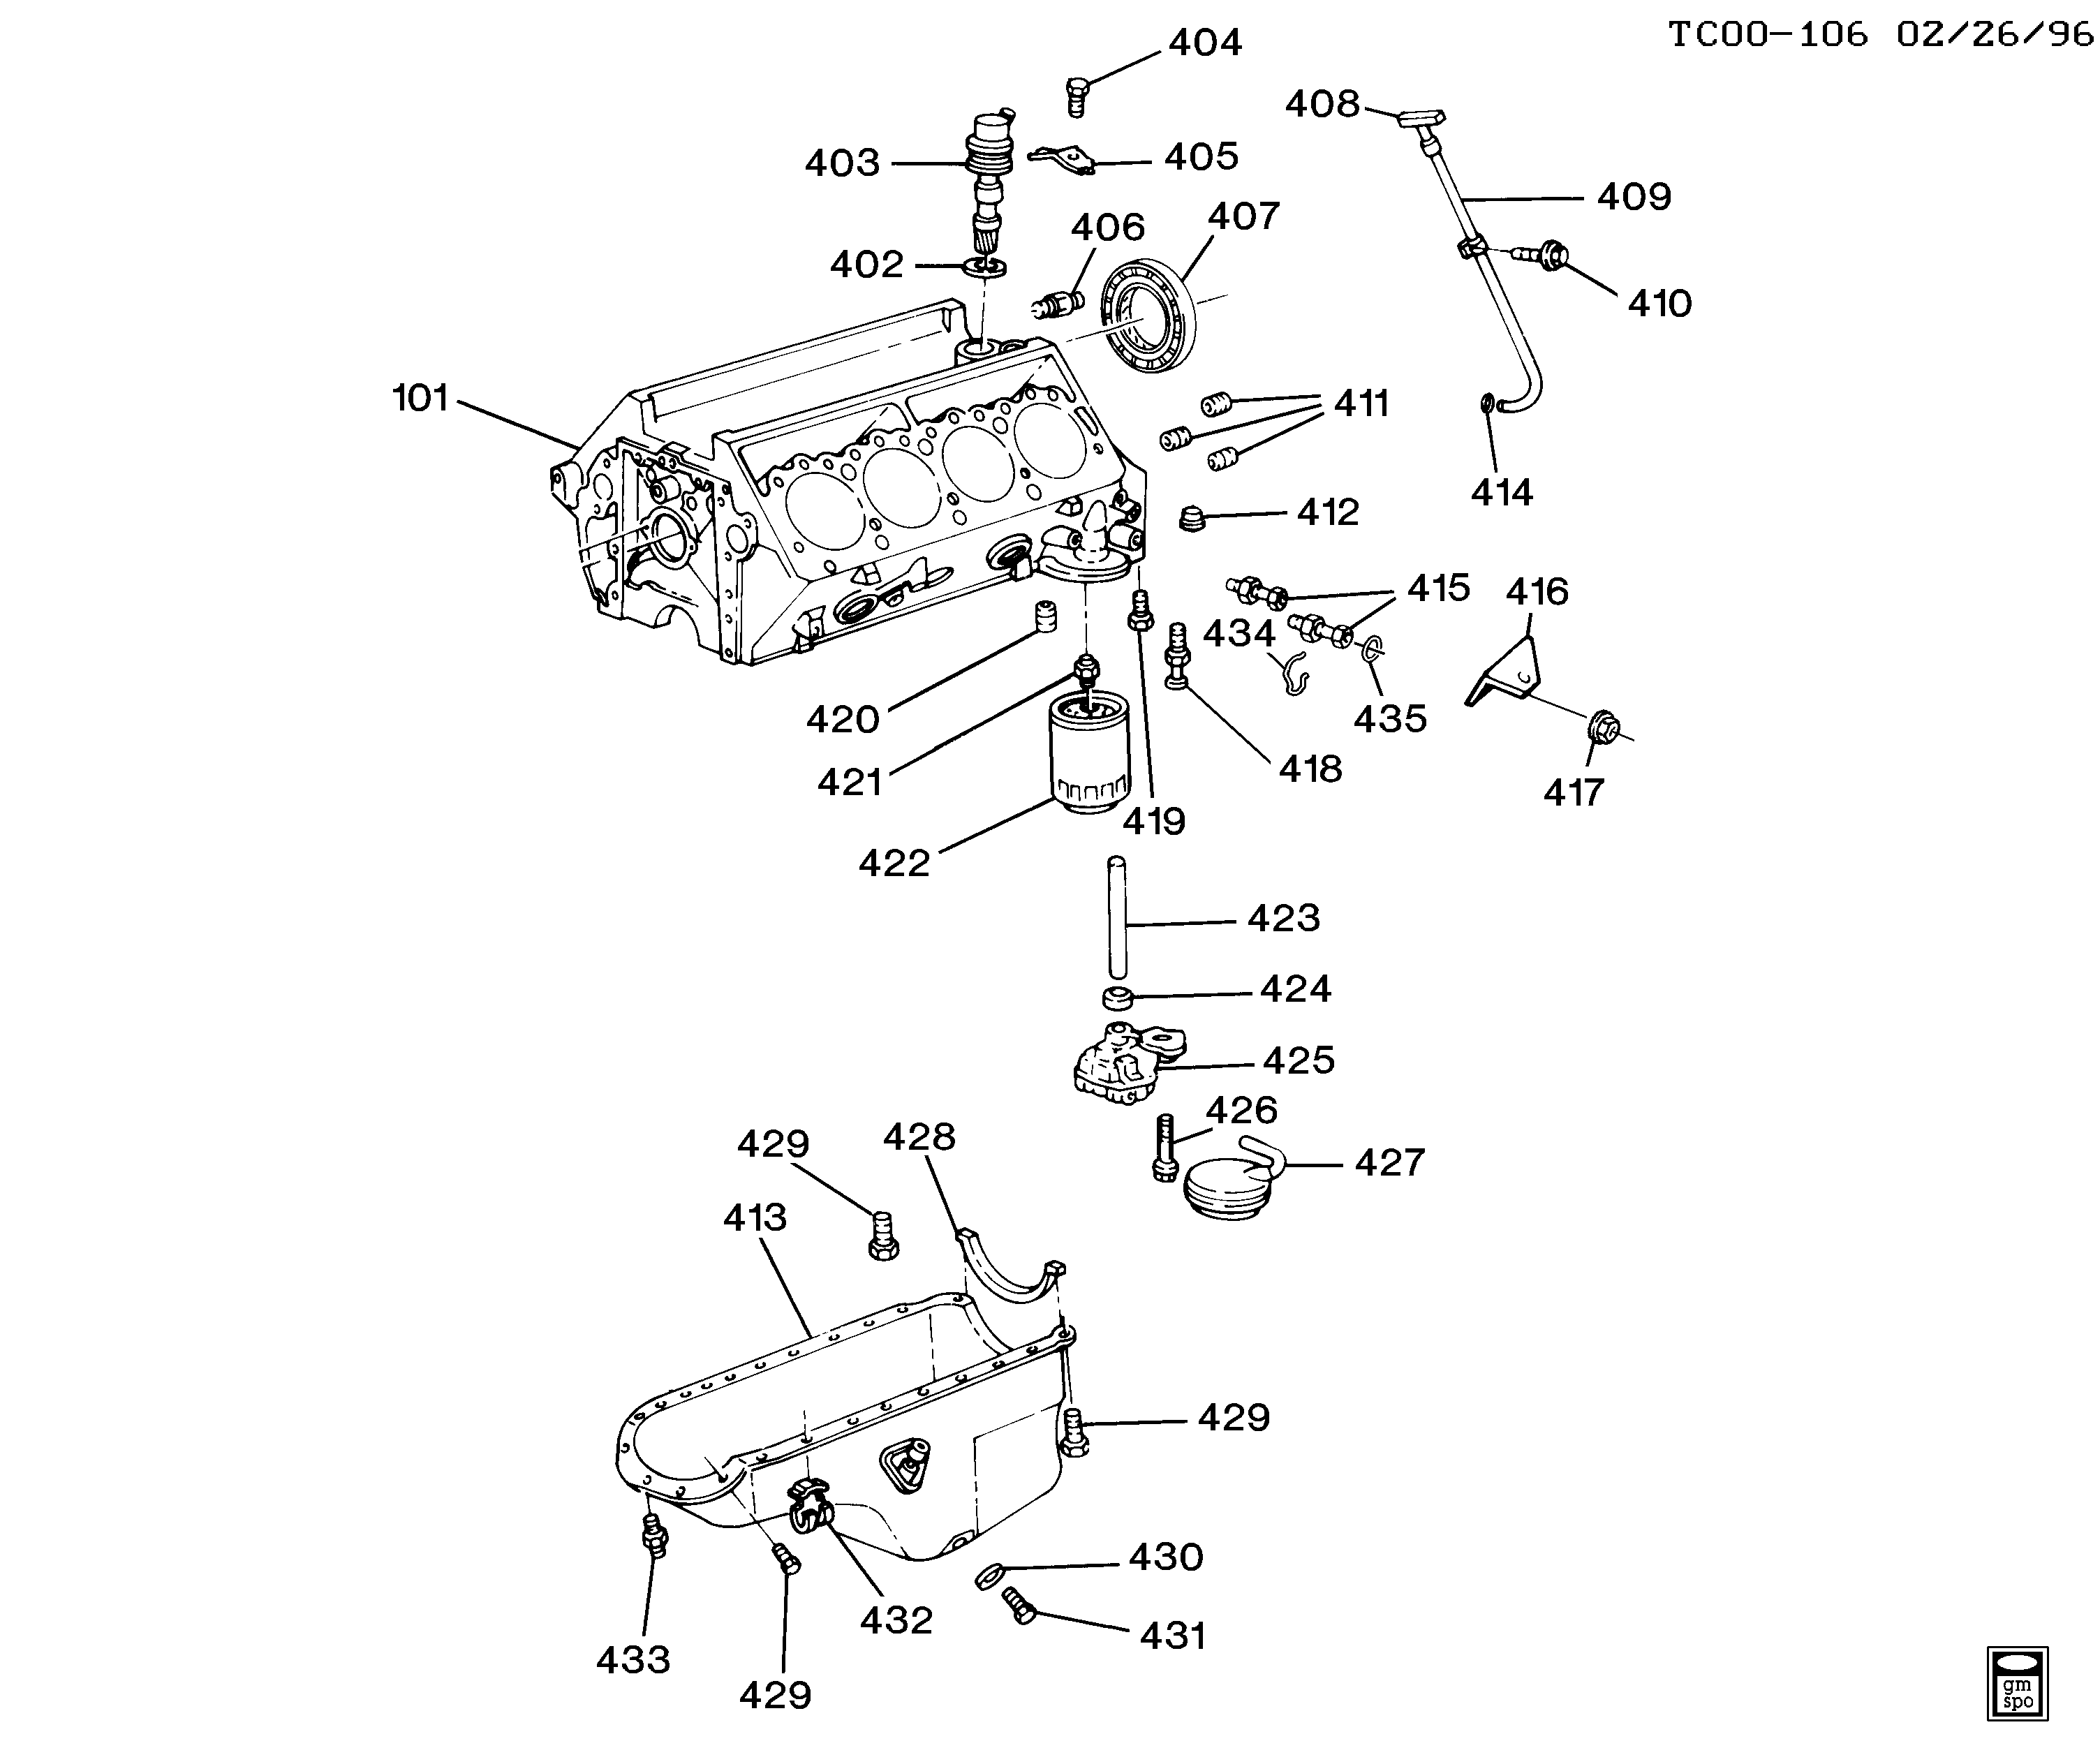 6 5 Diesel Exhaust System Diagram Great Installation Of Wiring Gm Chevy Engine Parts Library Rh 43 Budoshop4you De 4 Inch